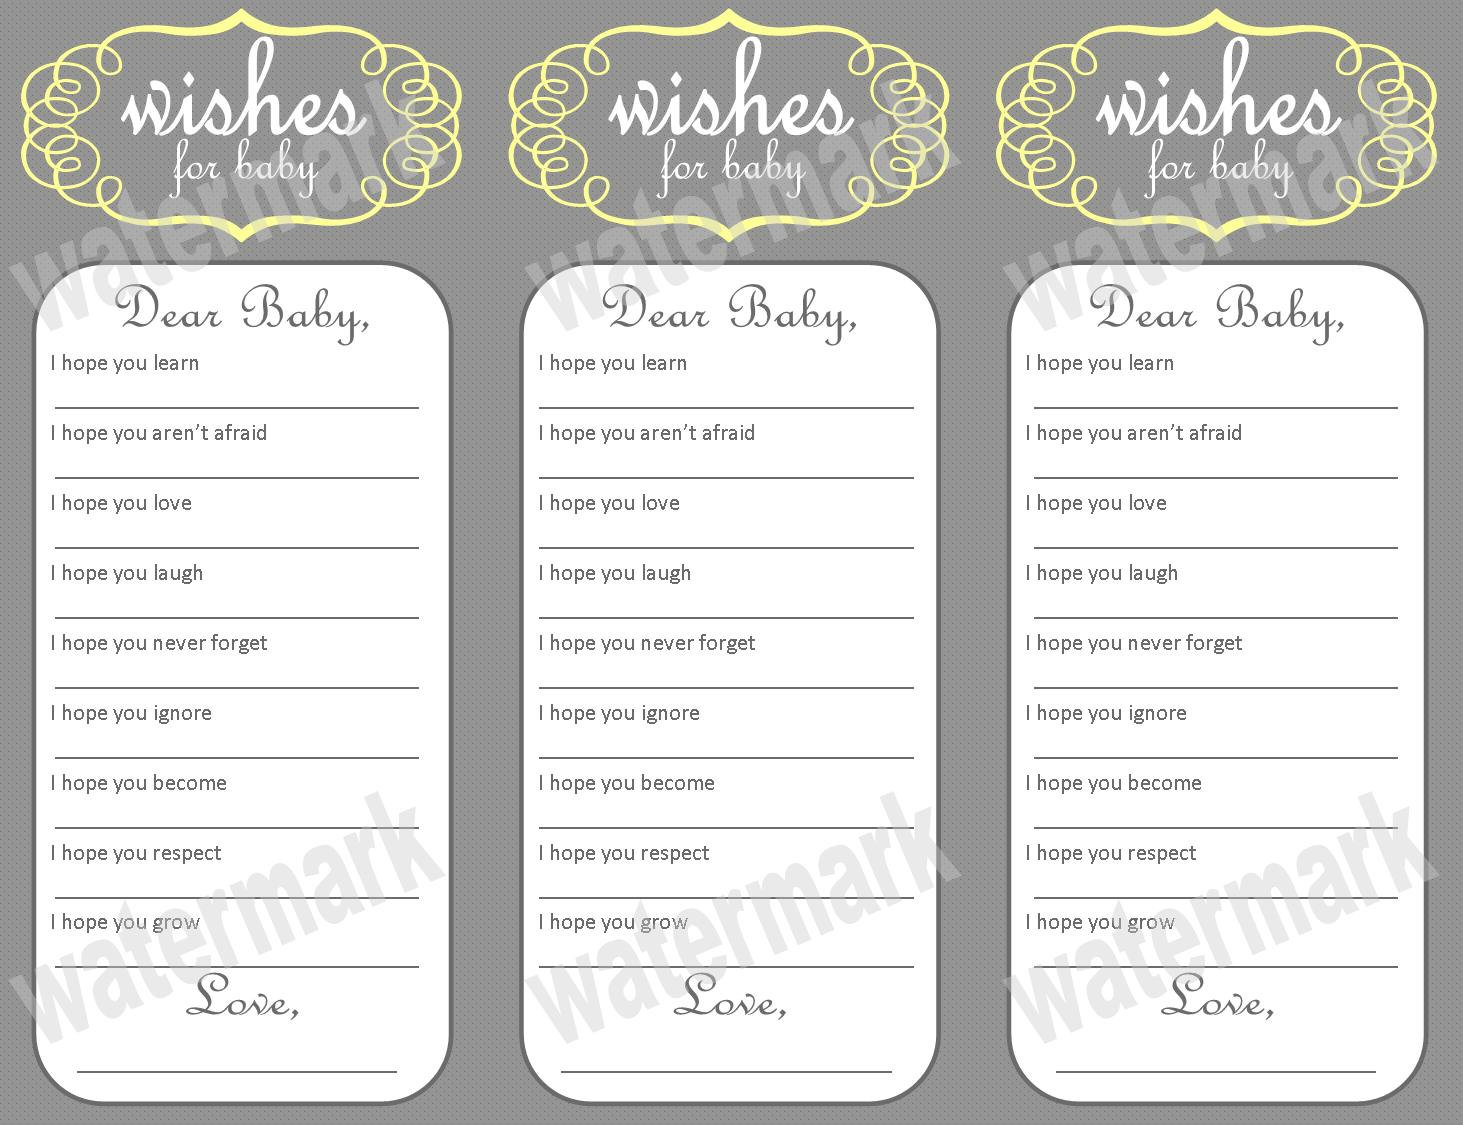 wishes for baby template printable - 5 best images of free printable baby wishes template